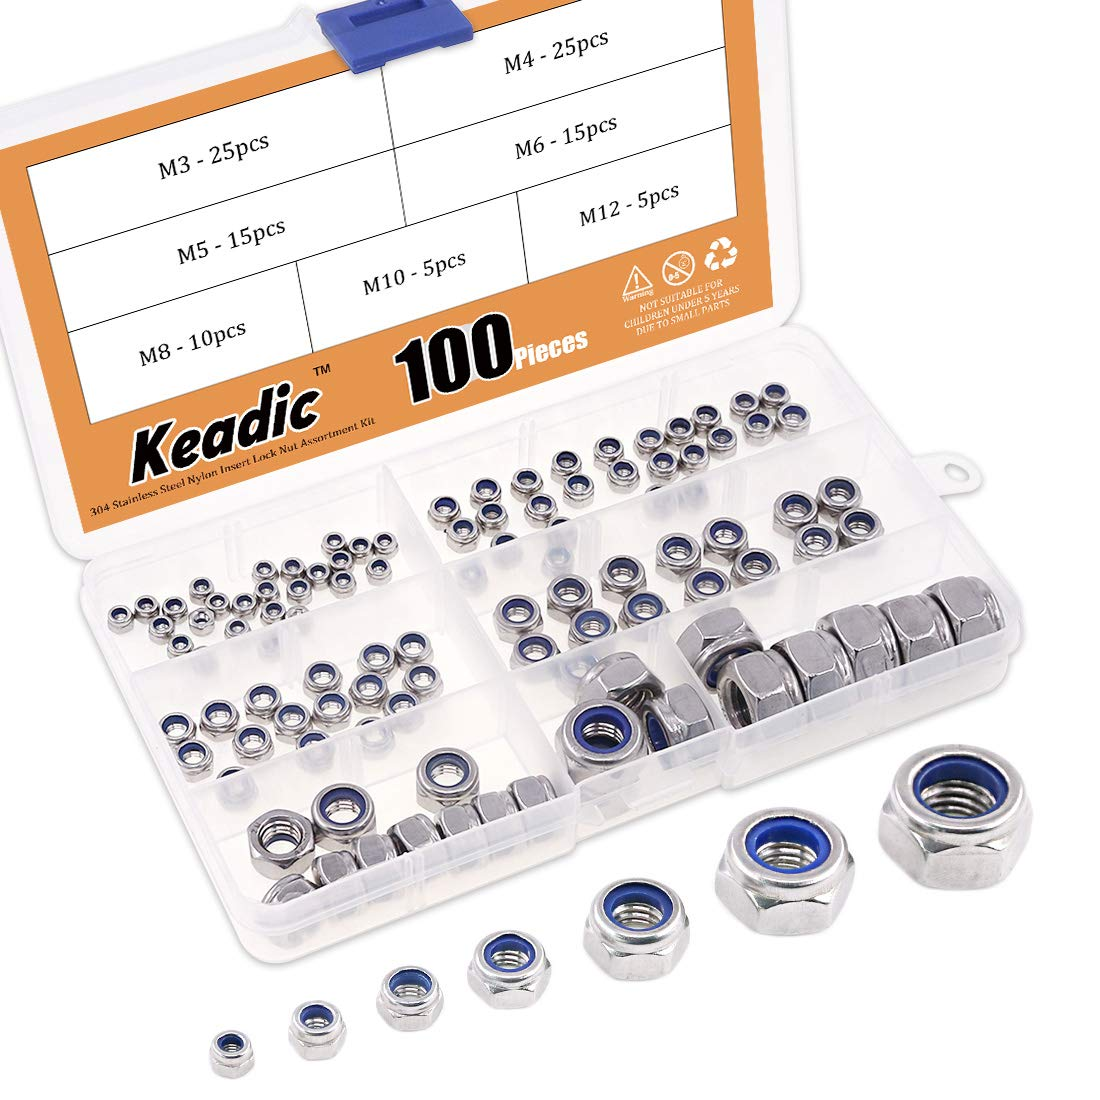 Keadic 100Pcs 304 Stainless Steel Metric Nylon Insert Lock Nut Assortment Kit - 7 Sizes: M3 M4 M5 M6 M8 M10 M12